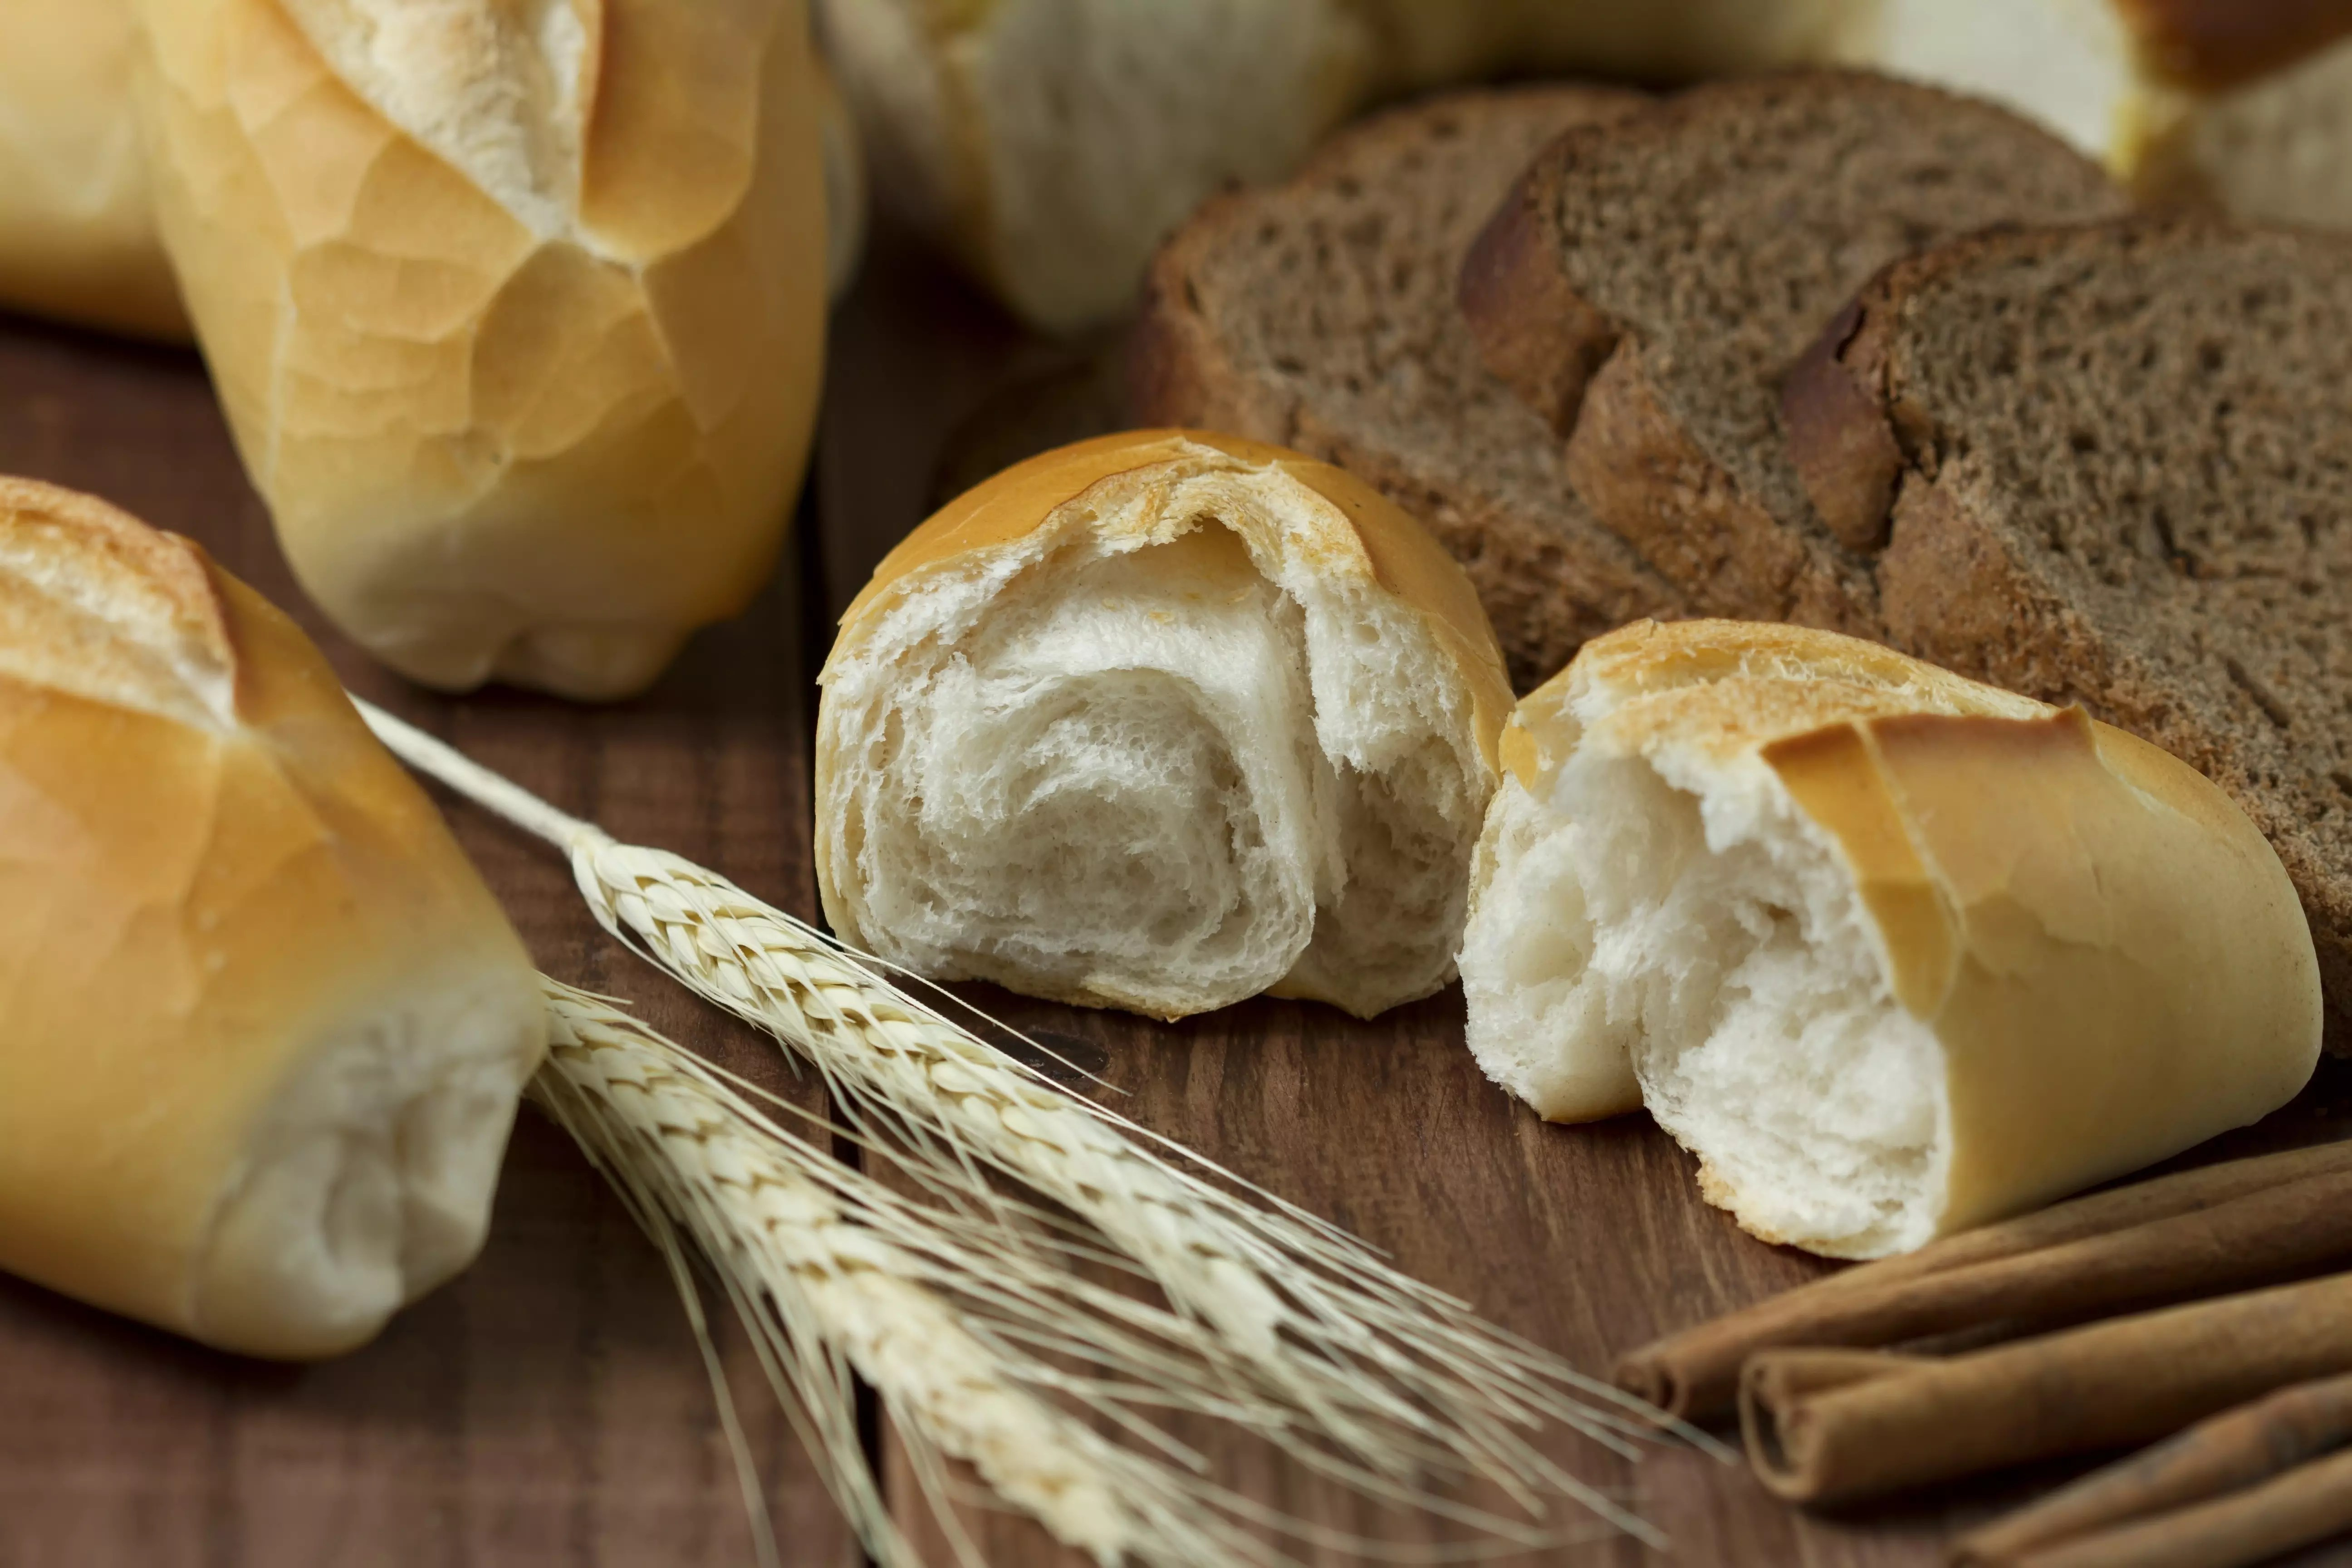 Wheat and fresh-baked breads